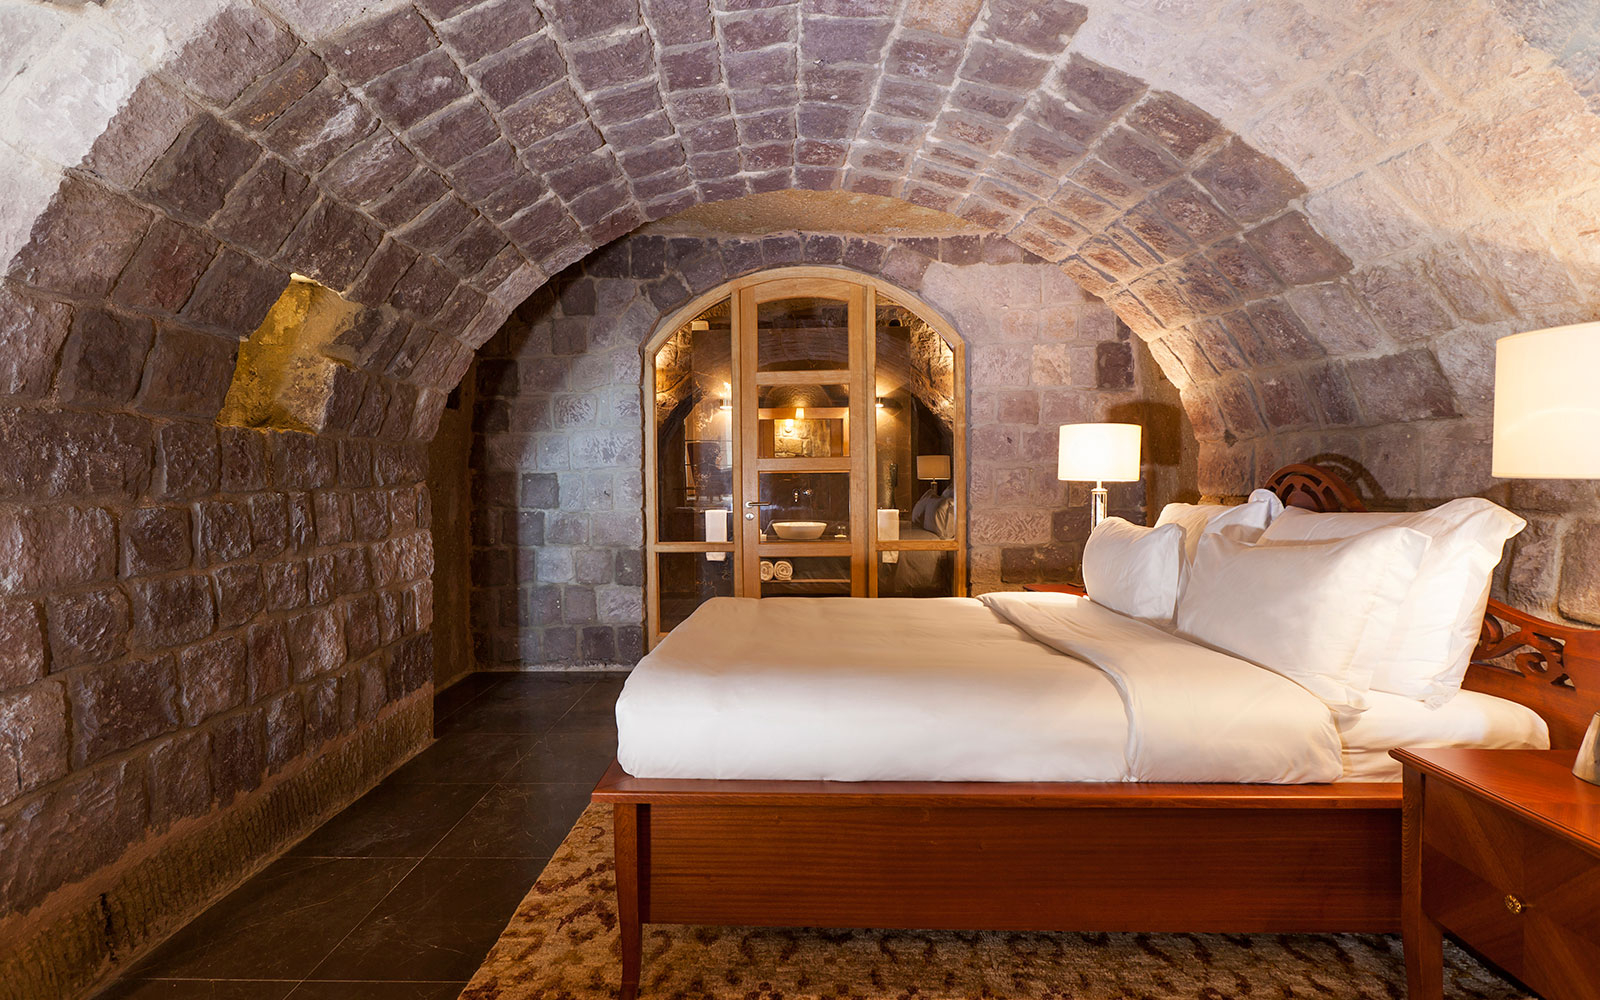 The House Hotel in Cappadocia, Turkey